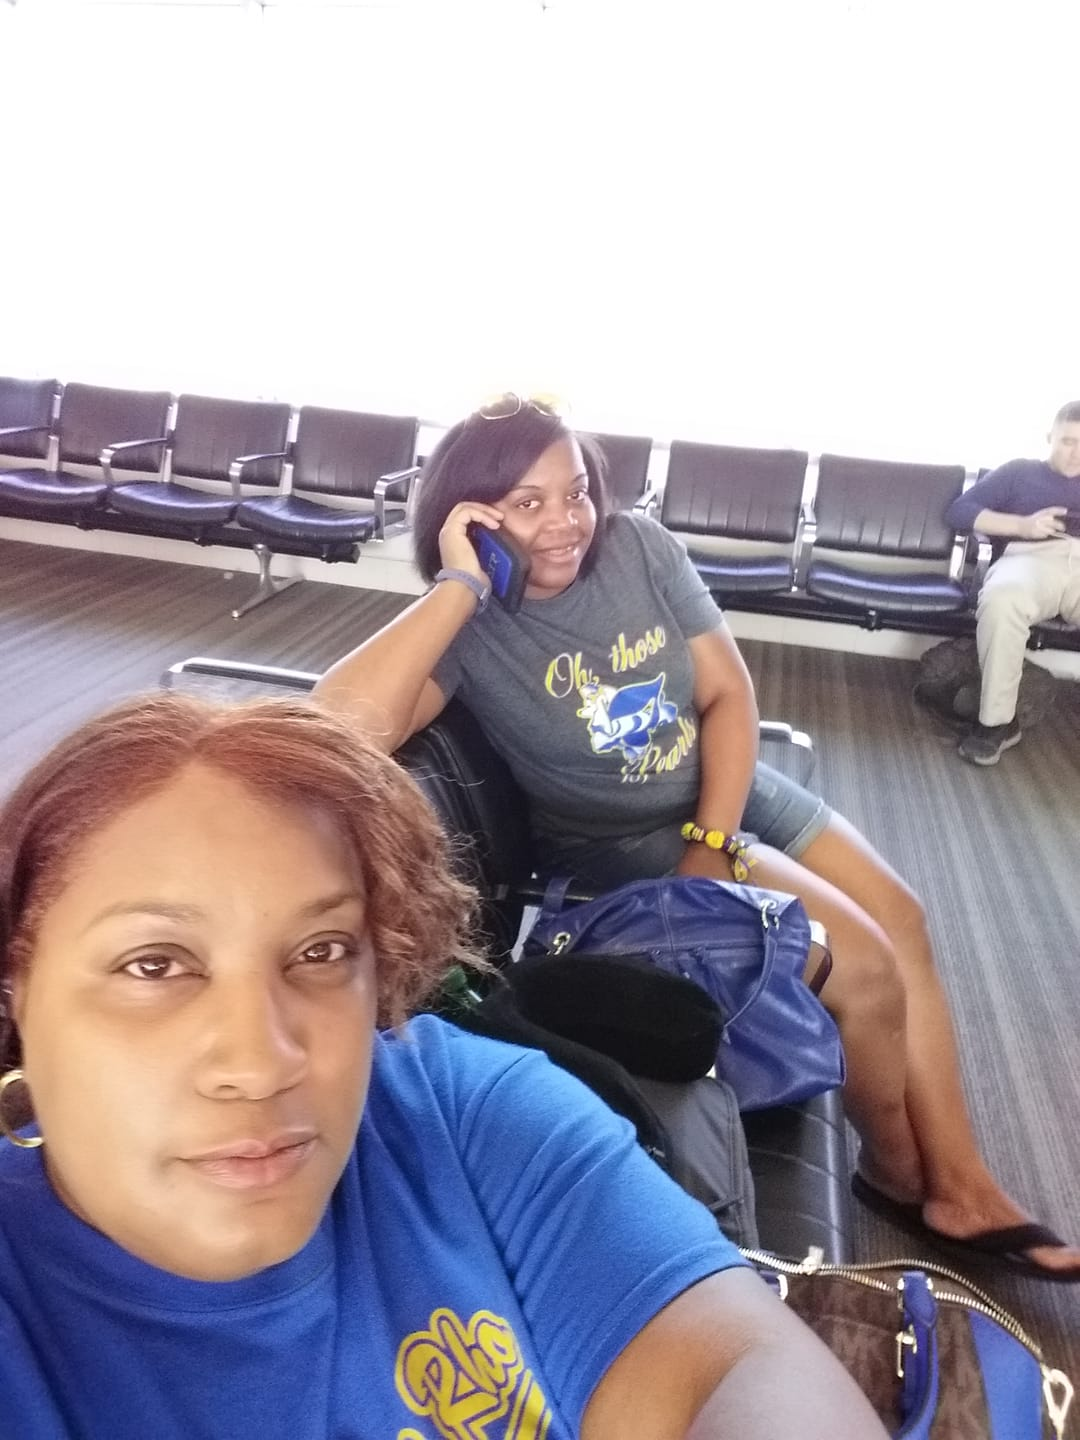 Sorors Yowell and Rhynes on the way to Boule 2018, Dallas TX